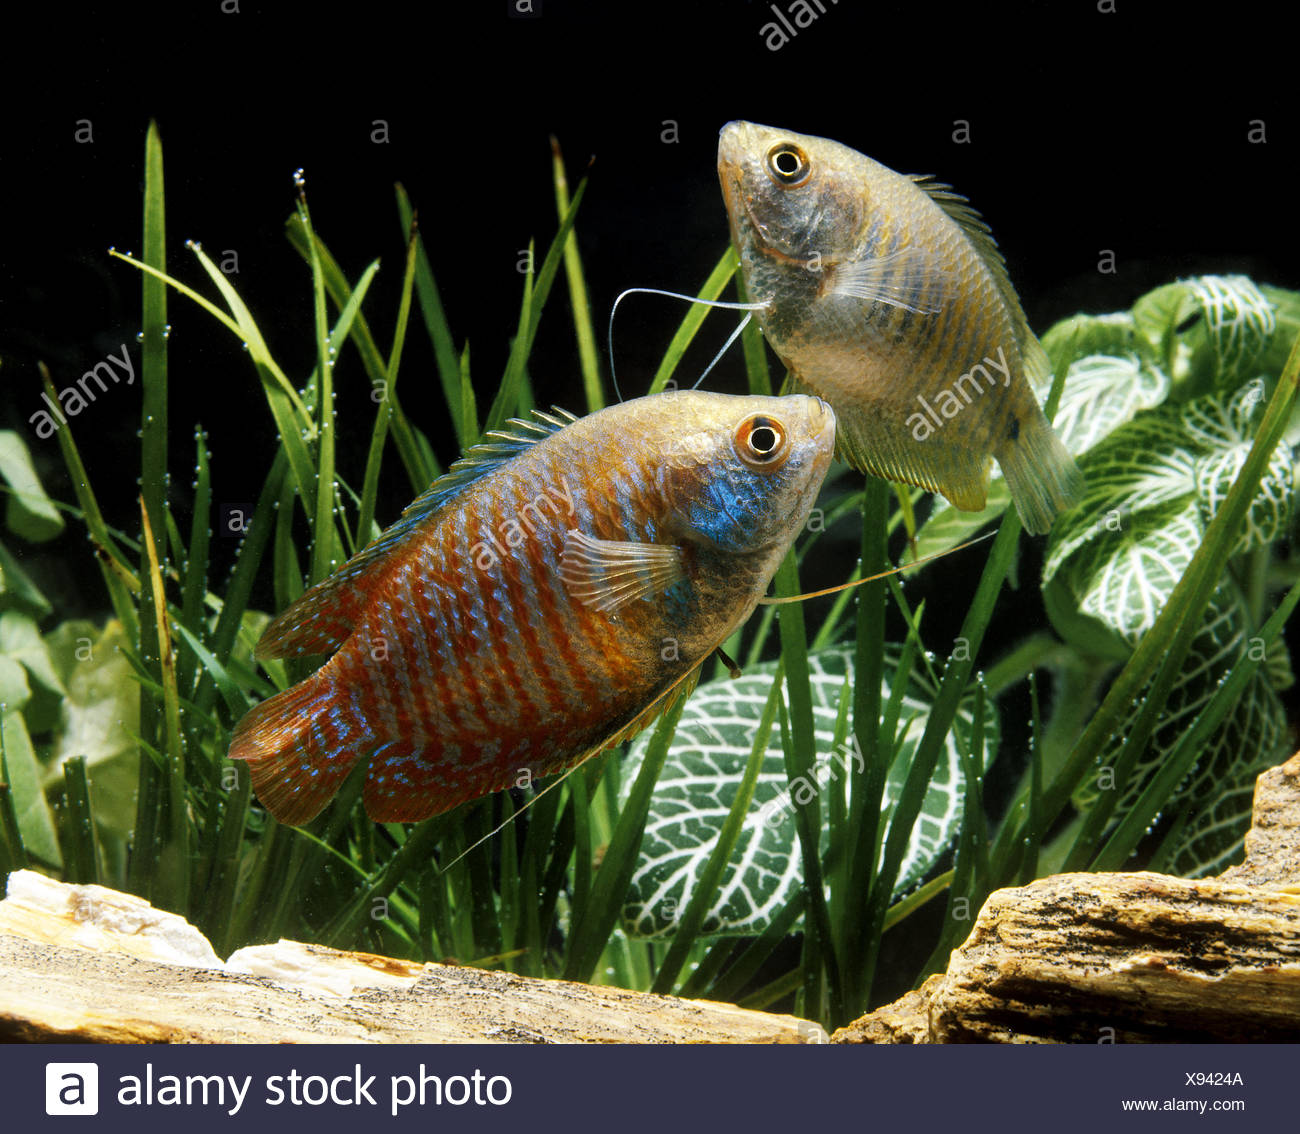 Dwarf Gourami, colisa lalia, Adults Stock Photo